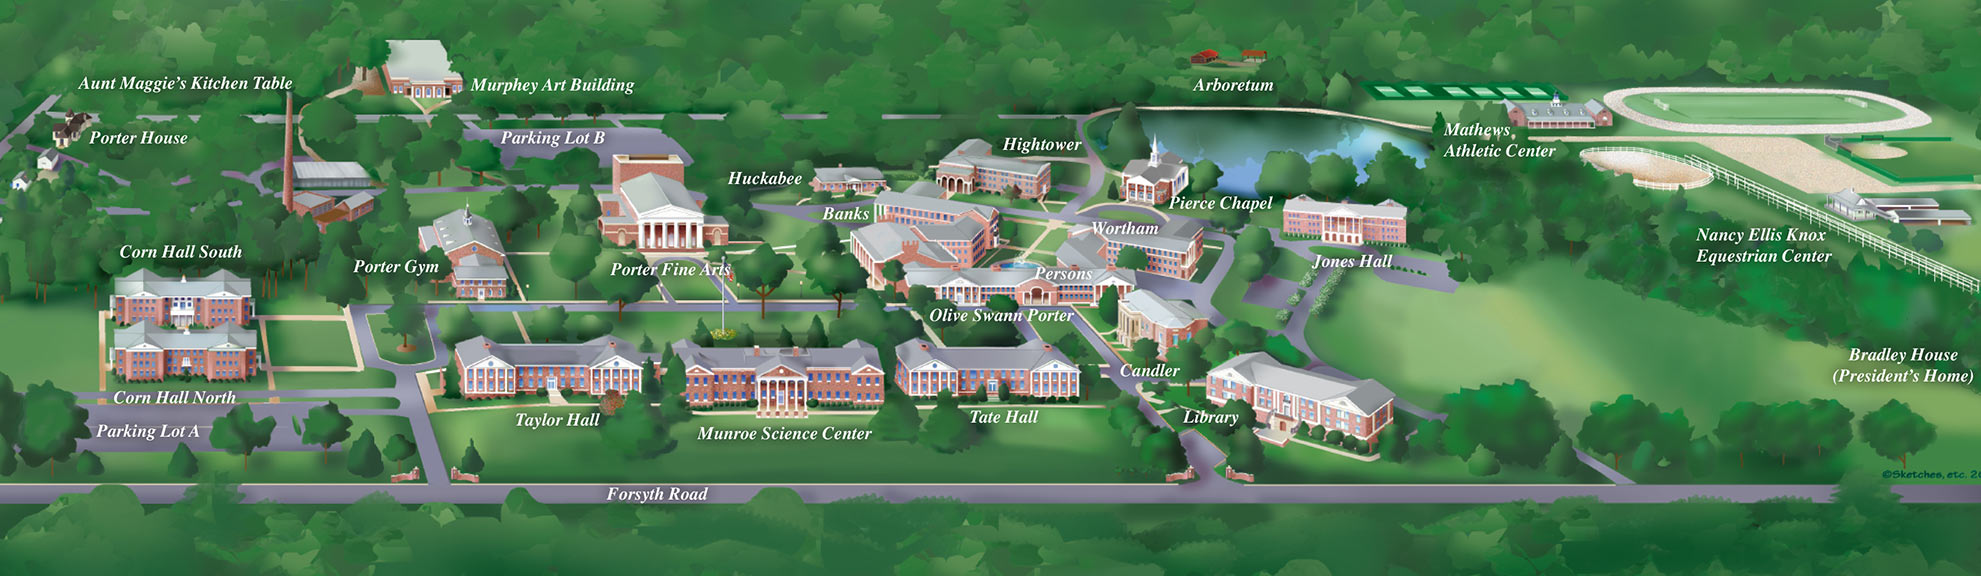 Image of Campus Map with titles of buildings.